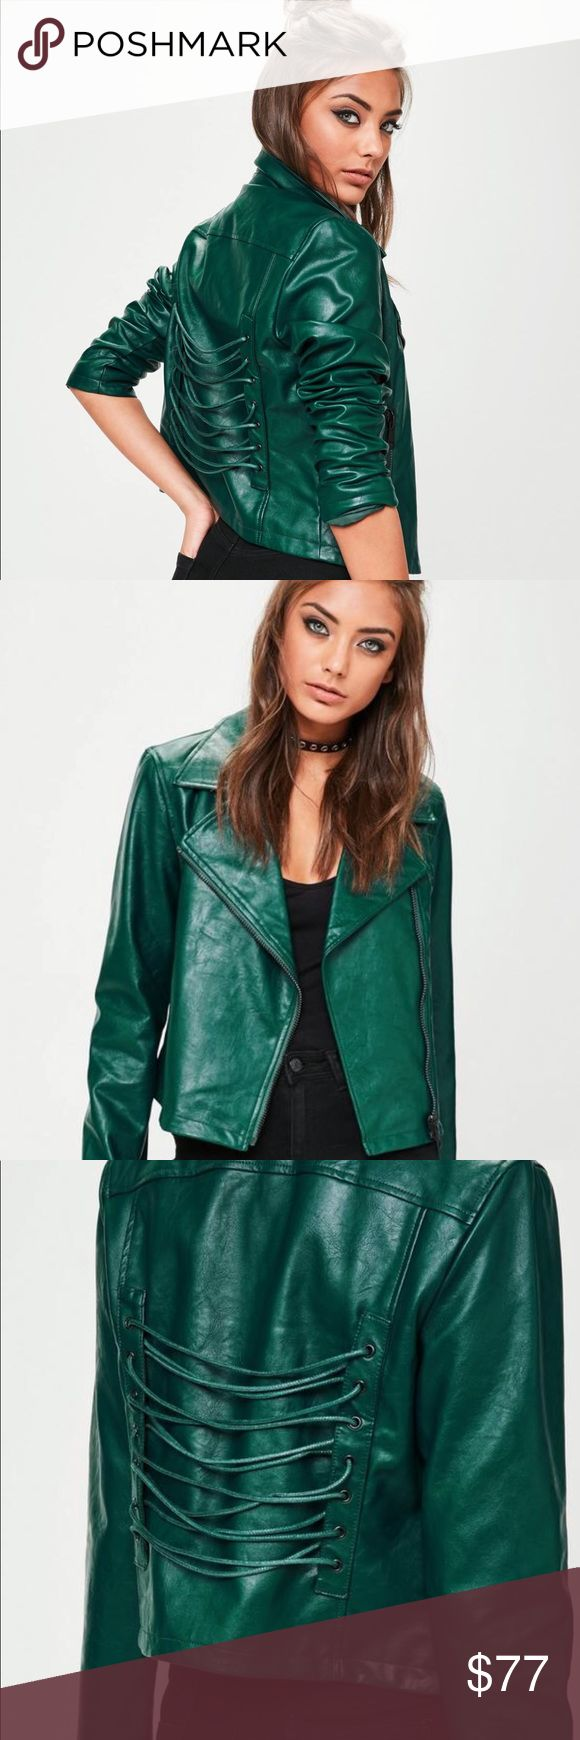 NWT Metallic green corset back biker jacket Brand new corset laced jacket in a gorgeous deep metallic green. 💚 Branch out from black and stand out in this unique take on the usual moto jacket. So cute I'd be happy to keep if it doesn't sell! ☺️ Jackets & Coats Utility Jackets